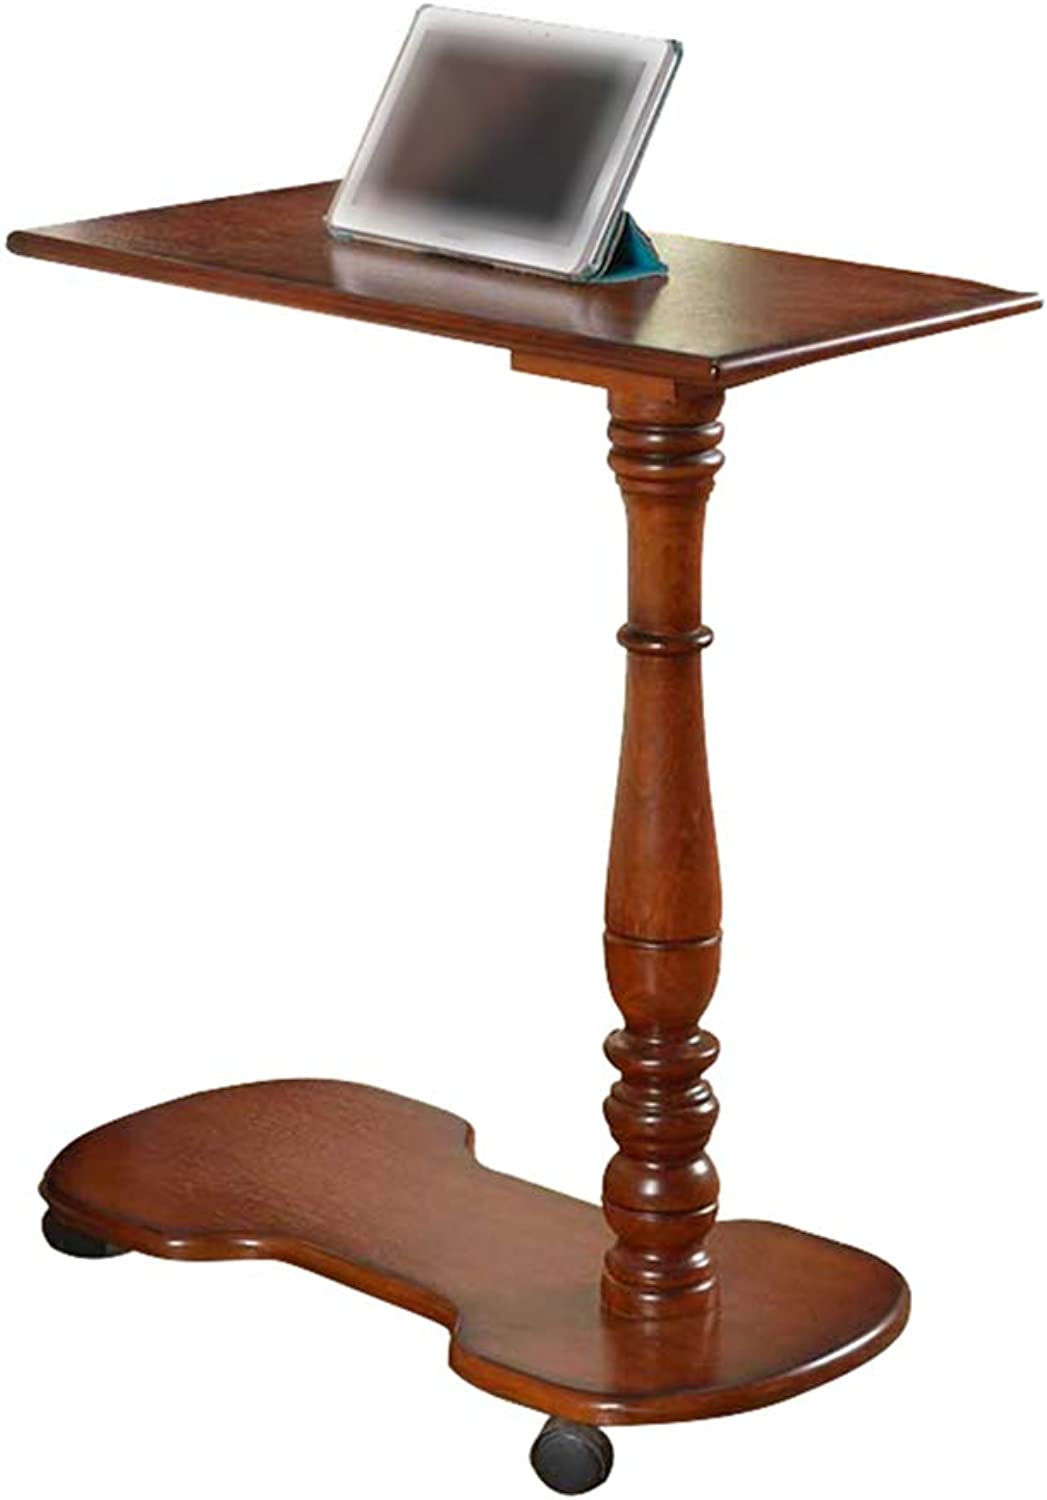 Mobile Table, Home Simple Small Coffee Table Writing Workbench - Sleek Minimalist Wooden Table - Lazy Bedside Table